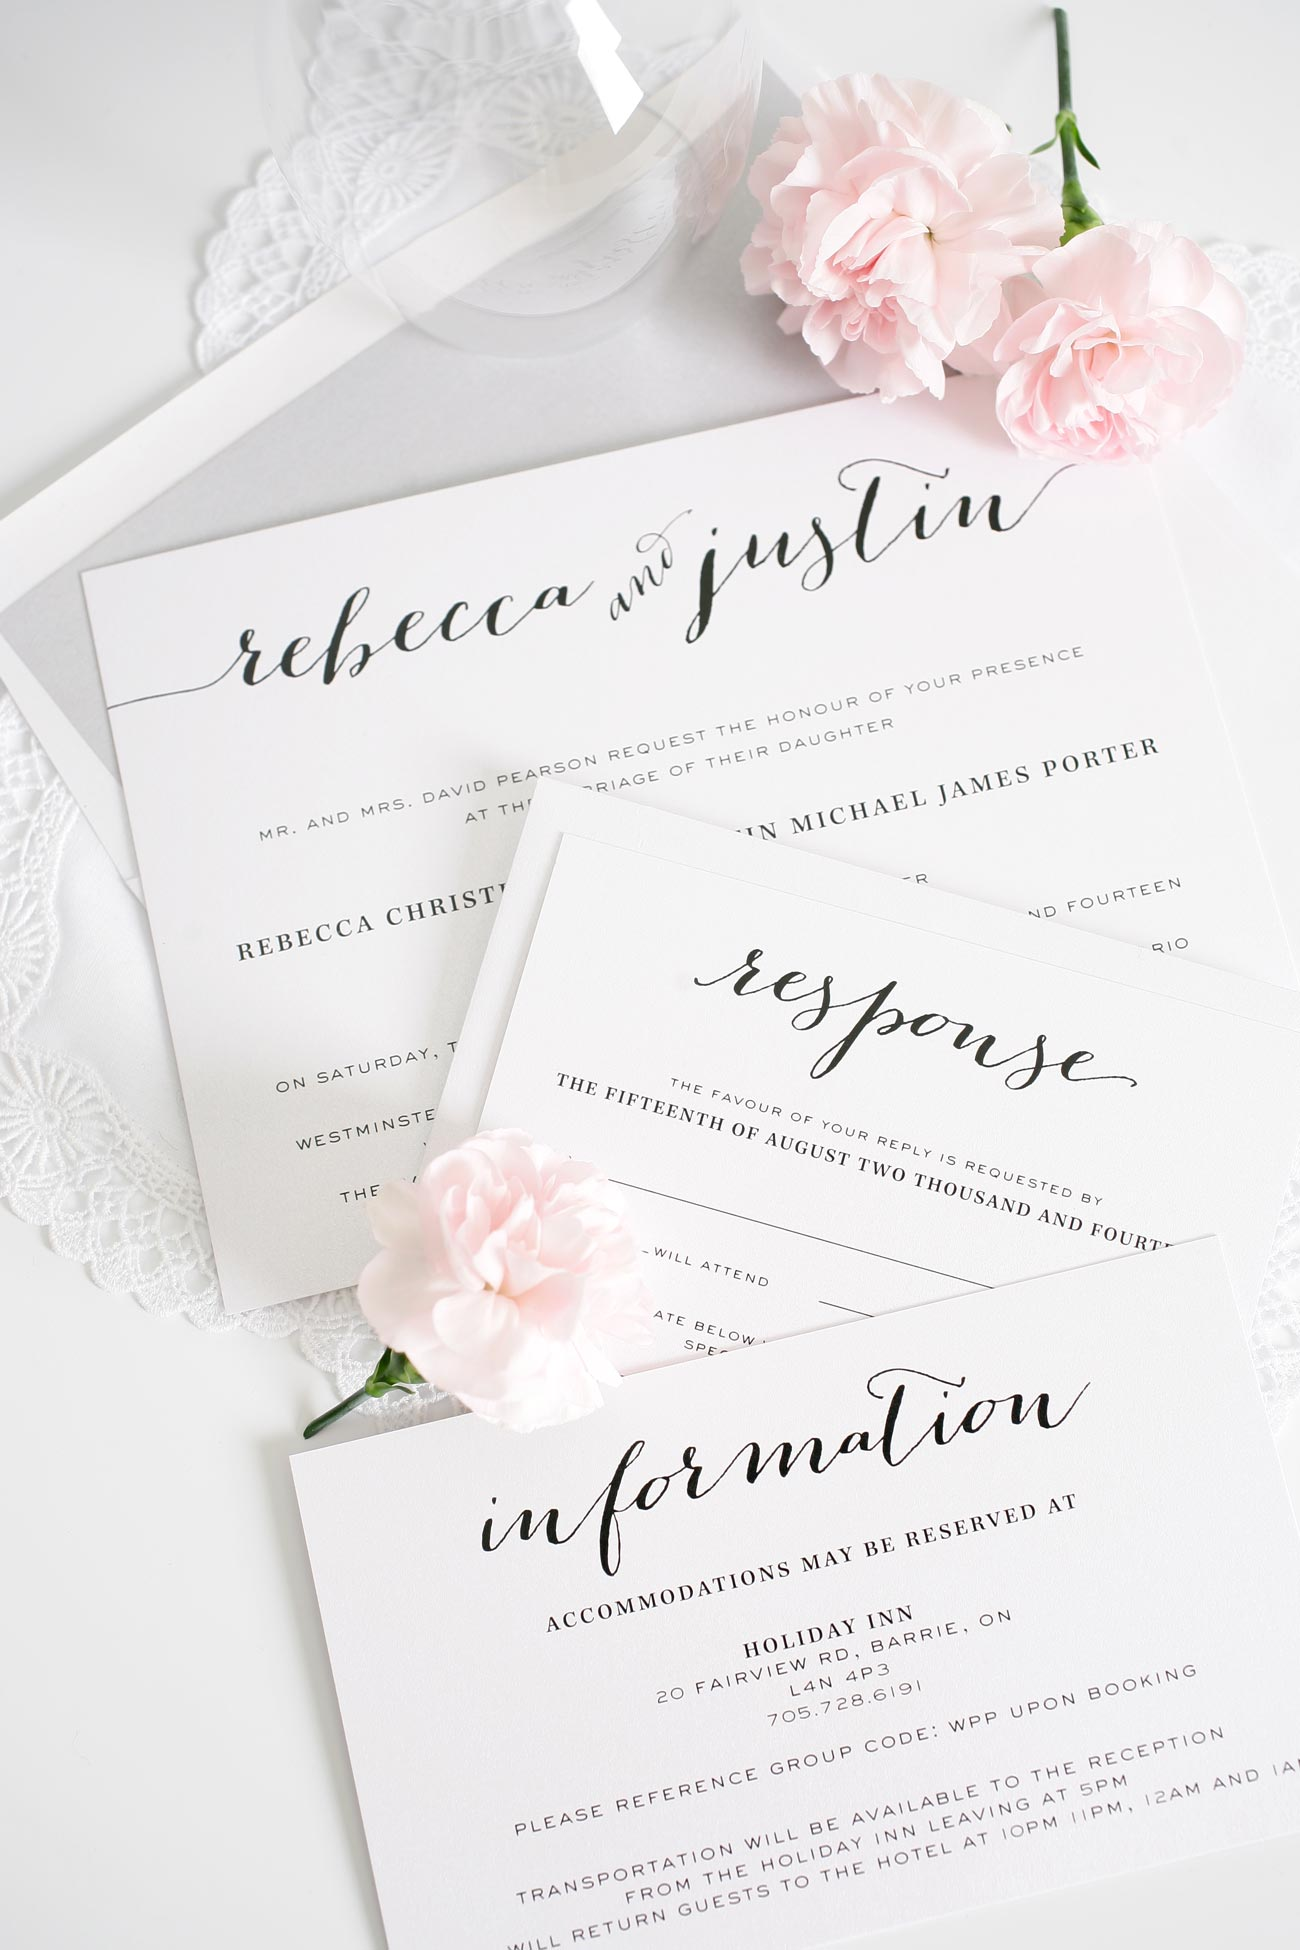 Script Wedding Invitations in Silver